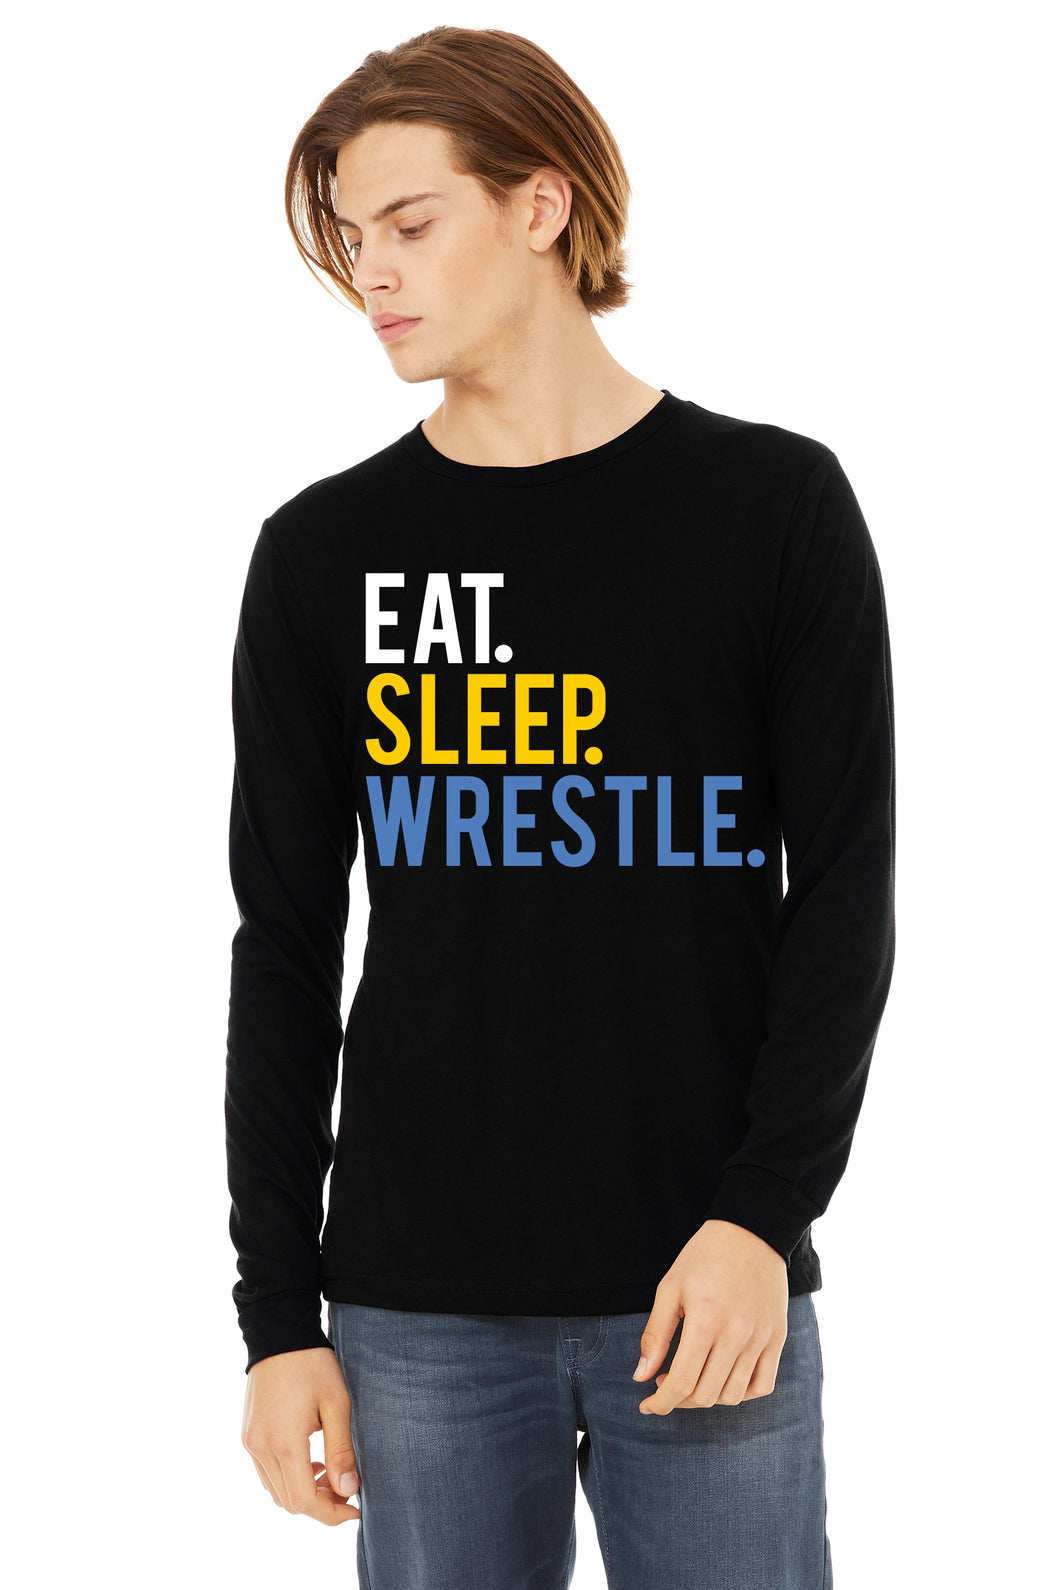 Eat Sleep Wrestle Long Sleeved Unisex